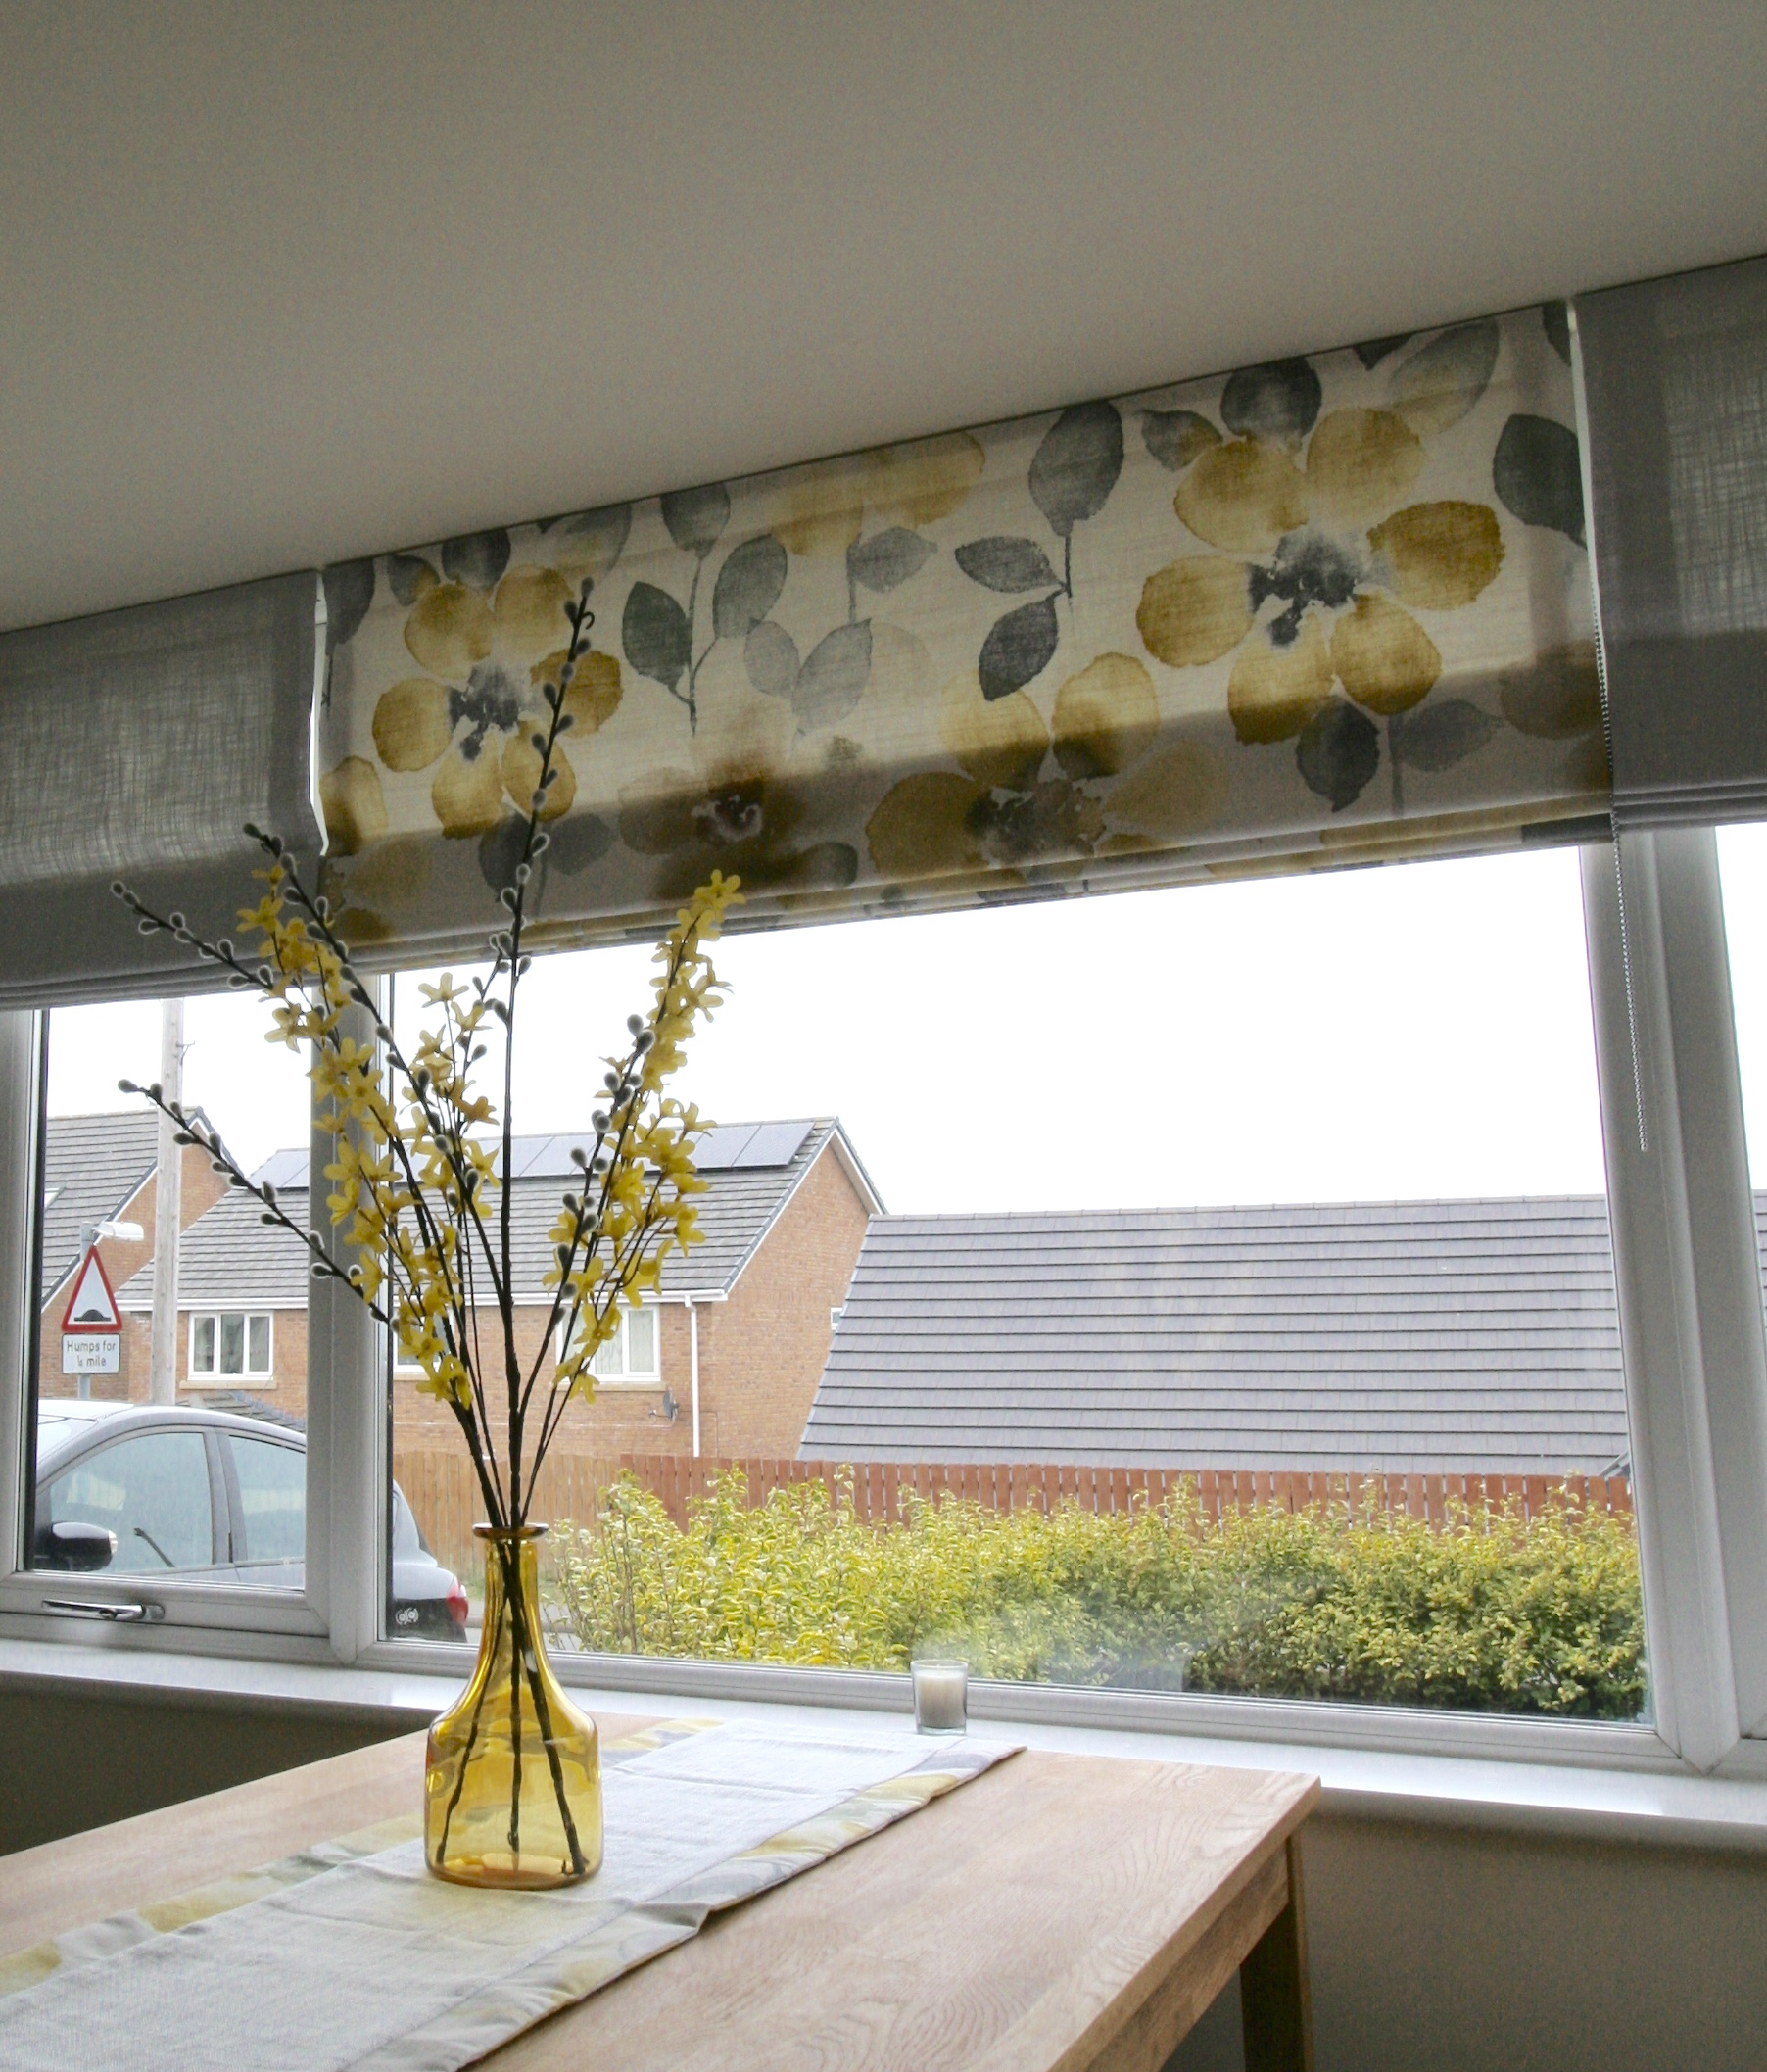 Roman blinds using Watercolour Bloom fabric from Next and Dove Grey fabric from Laura Ashley